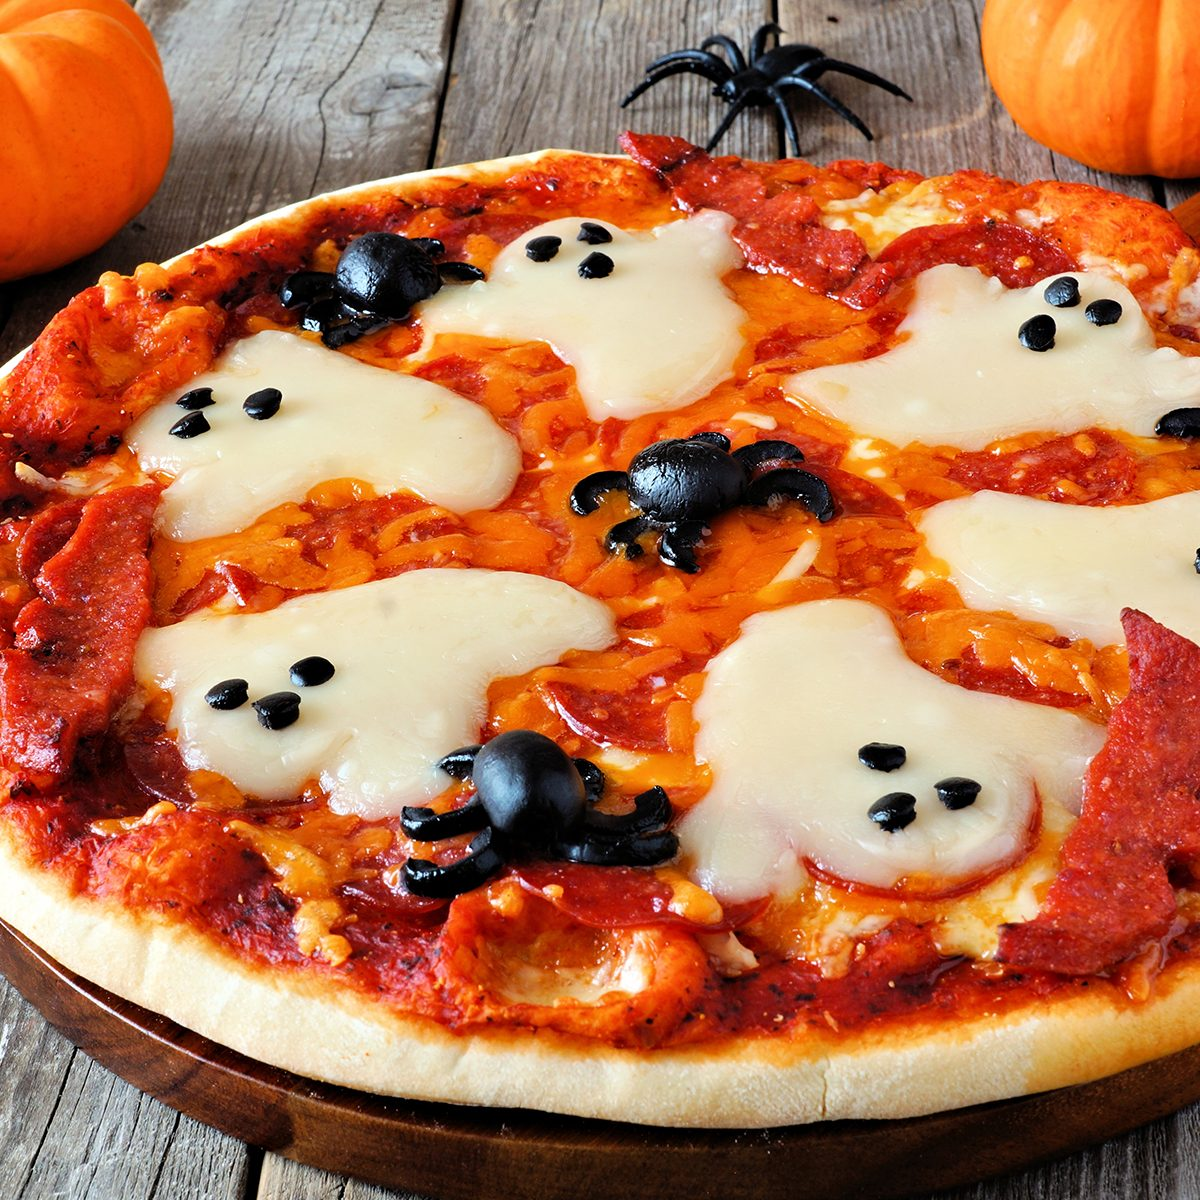 Halloween pizza with ghosts and spiders, close up on a rustic wood background